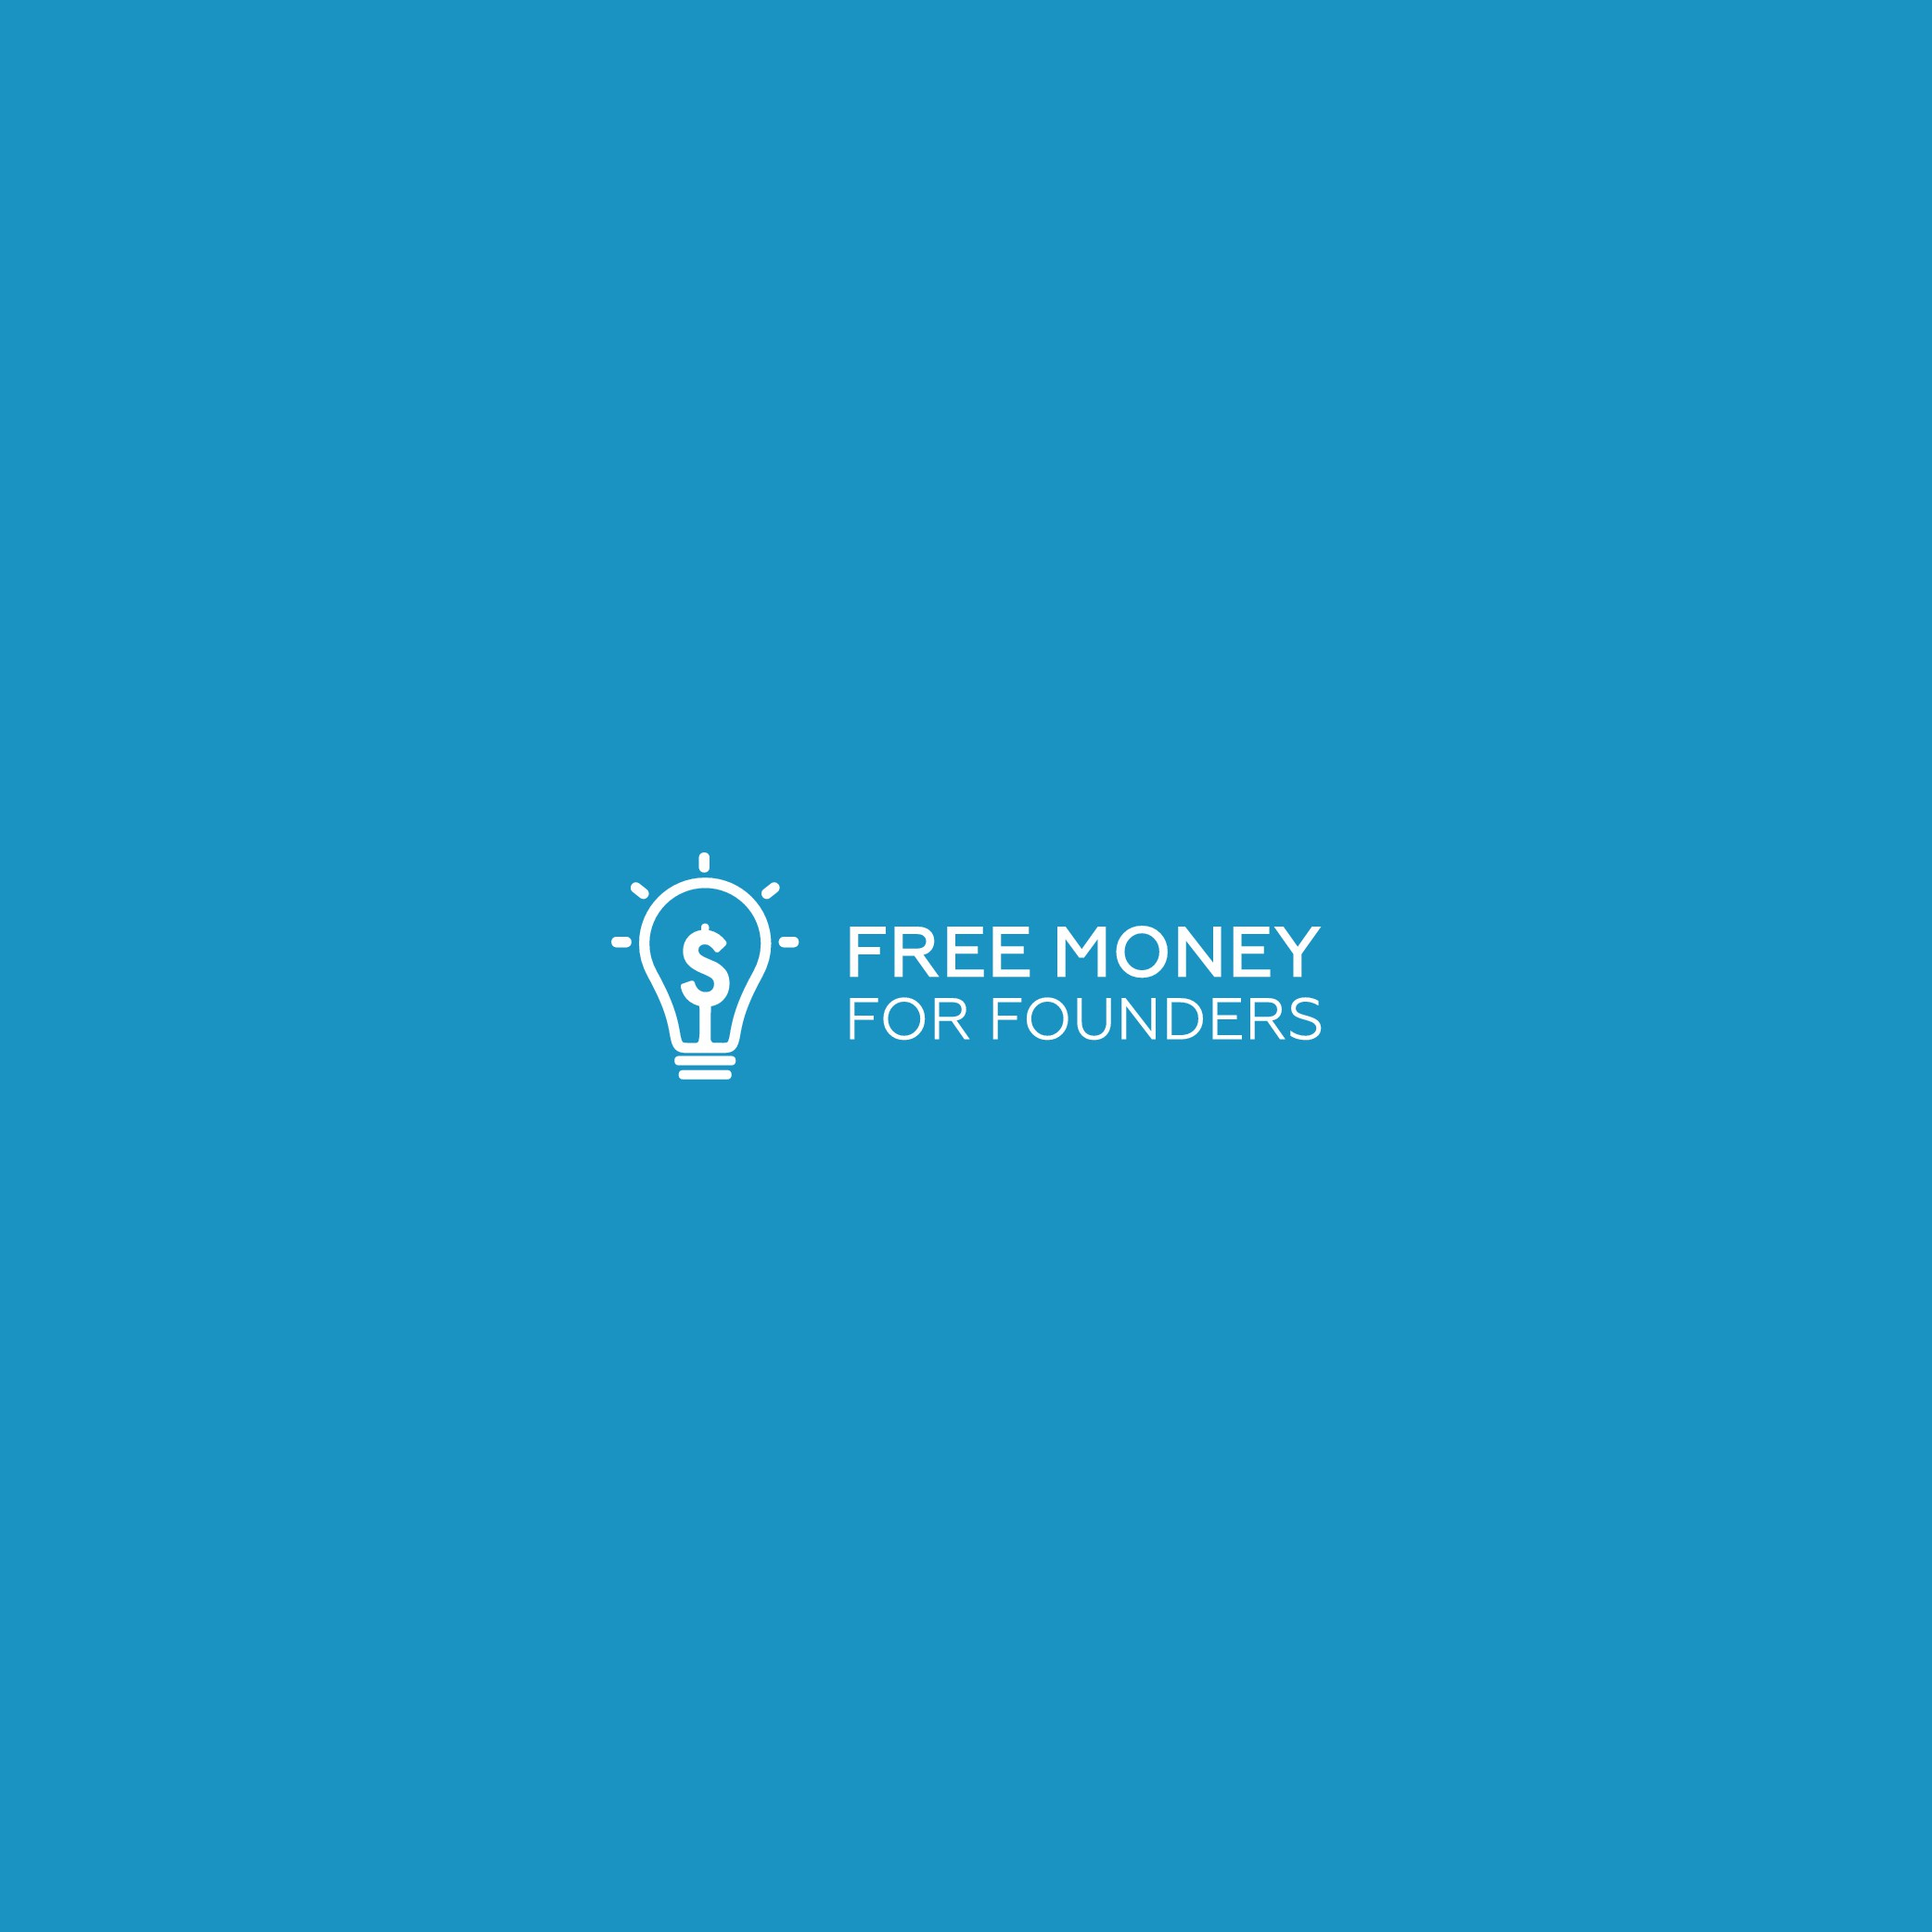 Free Money for Founders